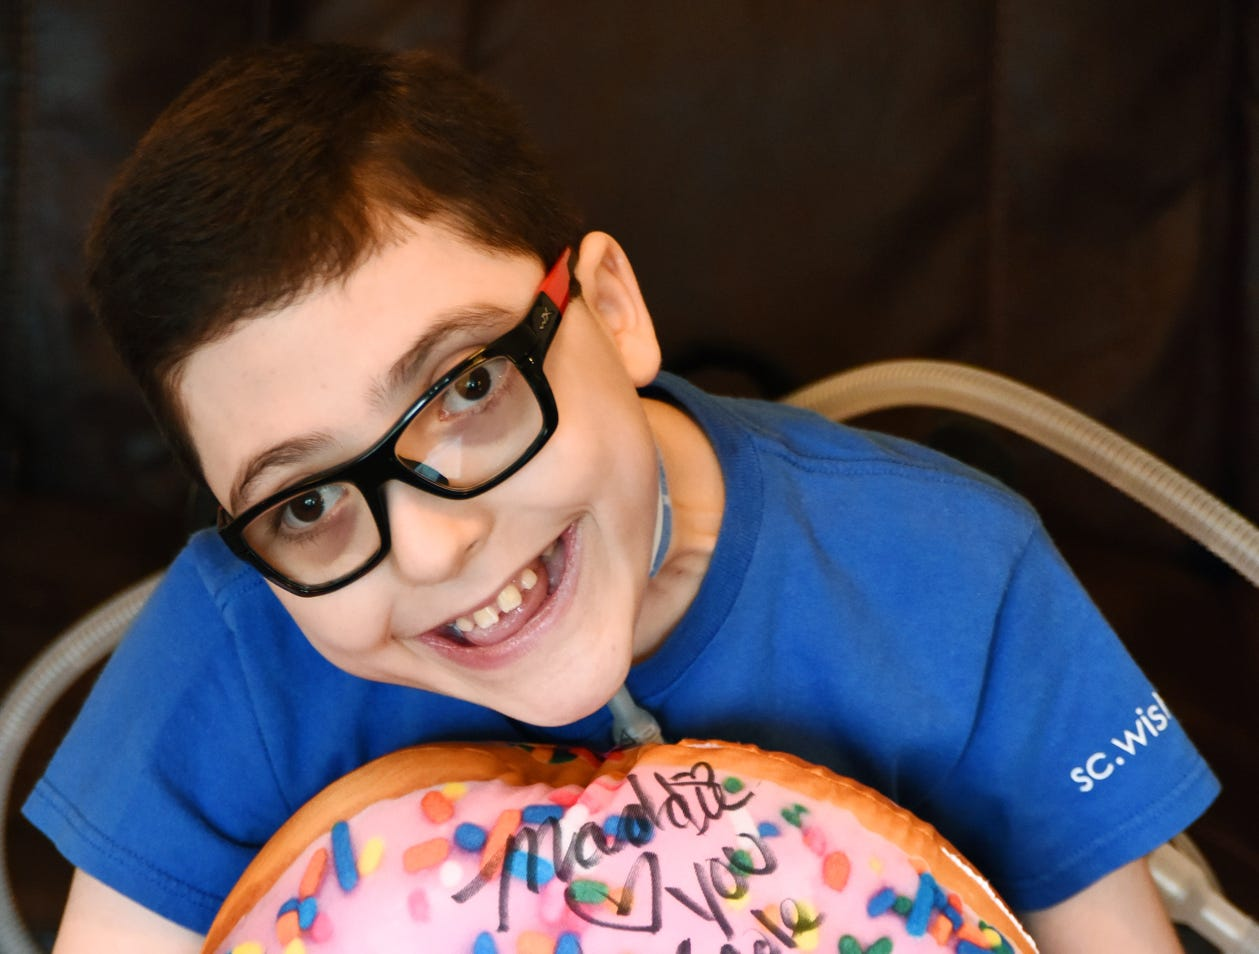 Cole Carroll holds a plush donut that he had signed by the cast of the Nickelodeon show Game Shakers during his trip to Los Angeles with Make-A-Wish South Carolina.